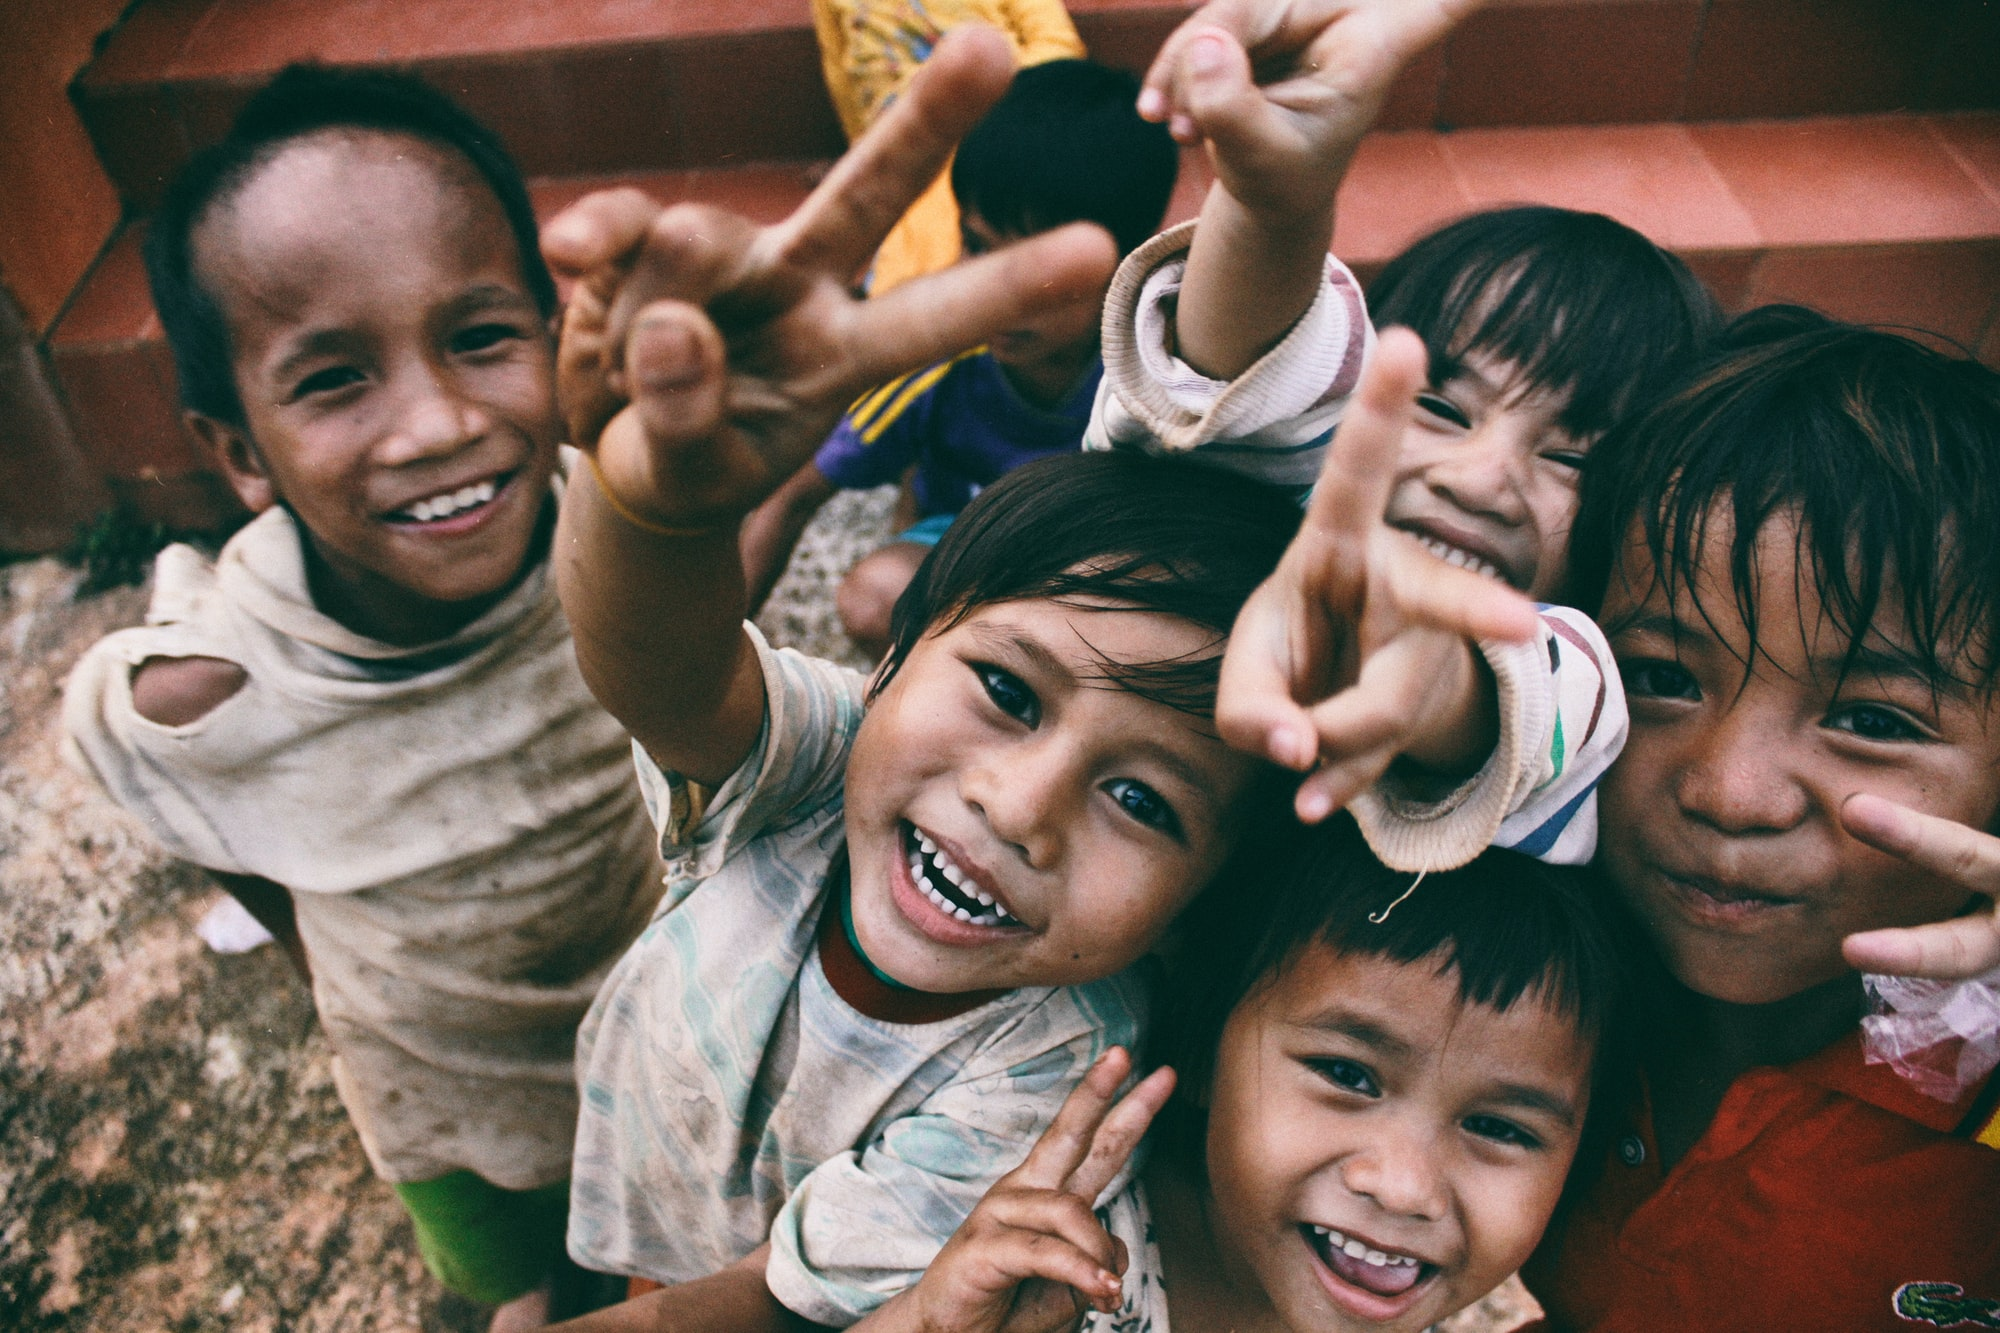 Happiness of the poor children. Taken in Chupah district, Gialai province Vietnam.